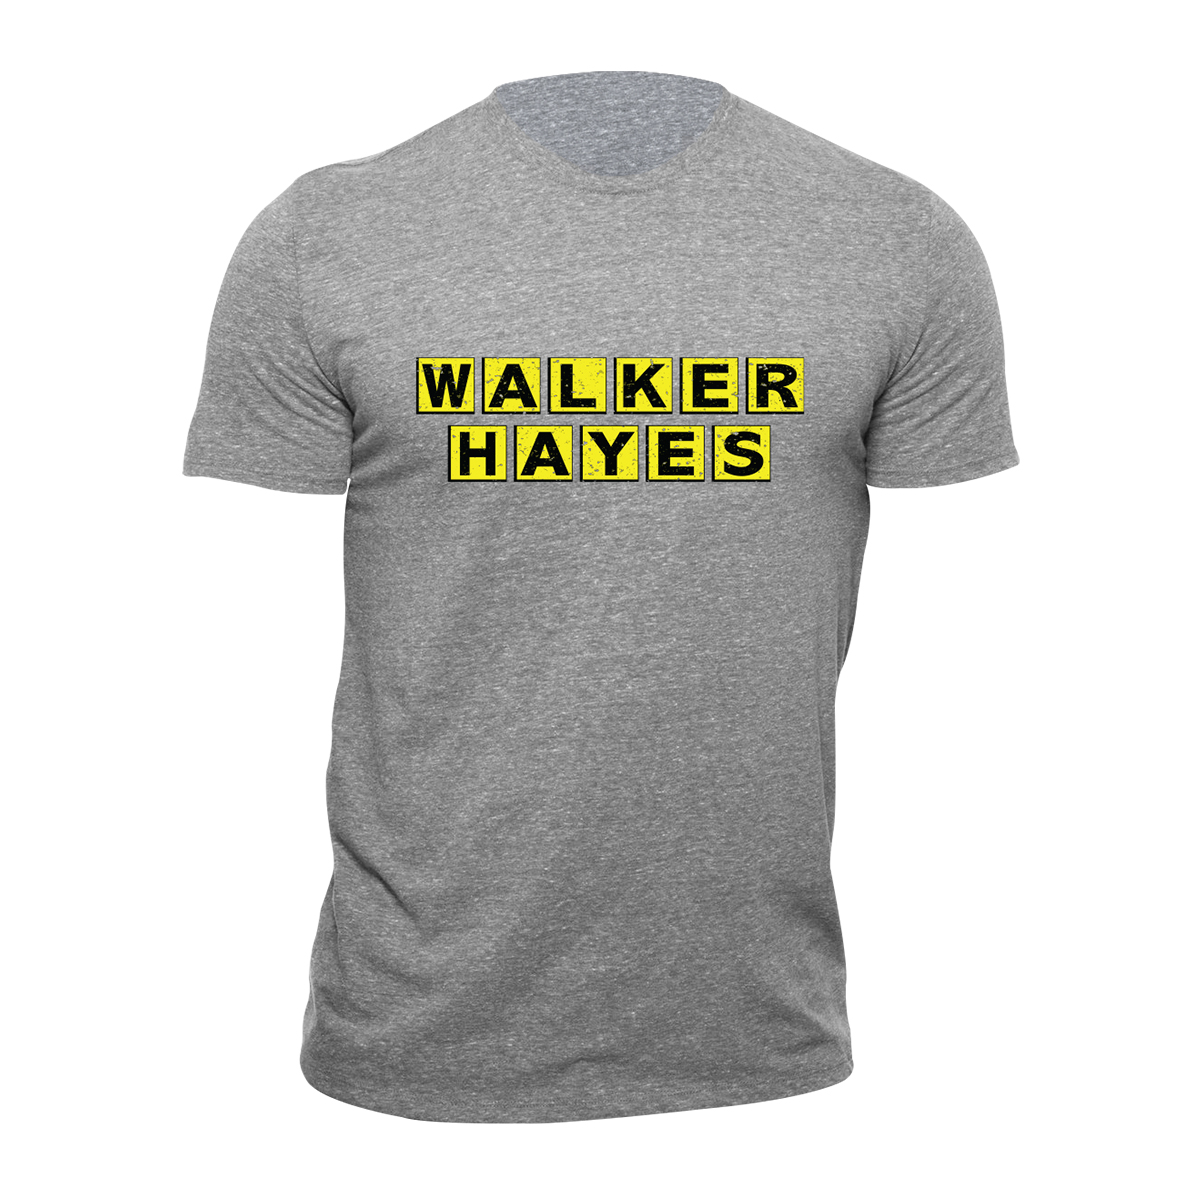 Walker Hayes T-shirt